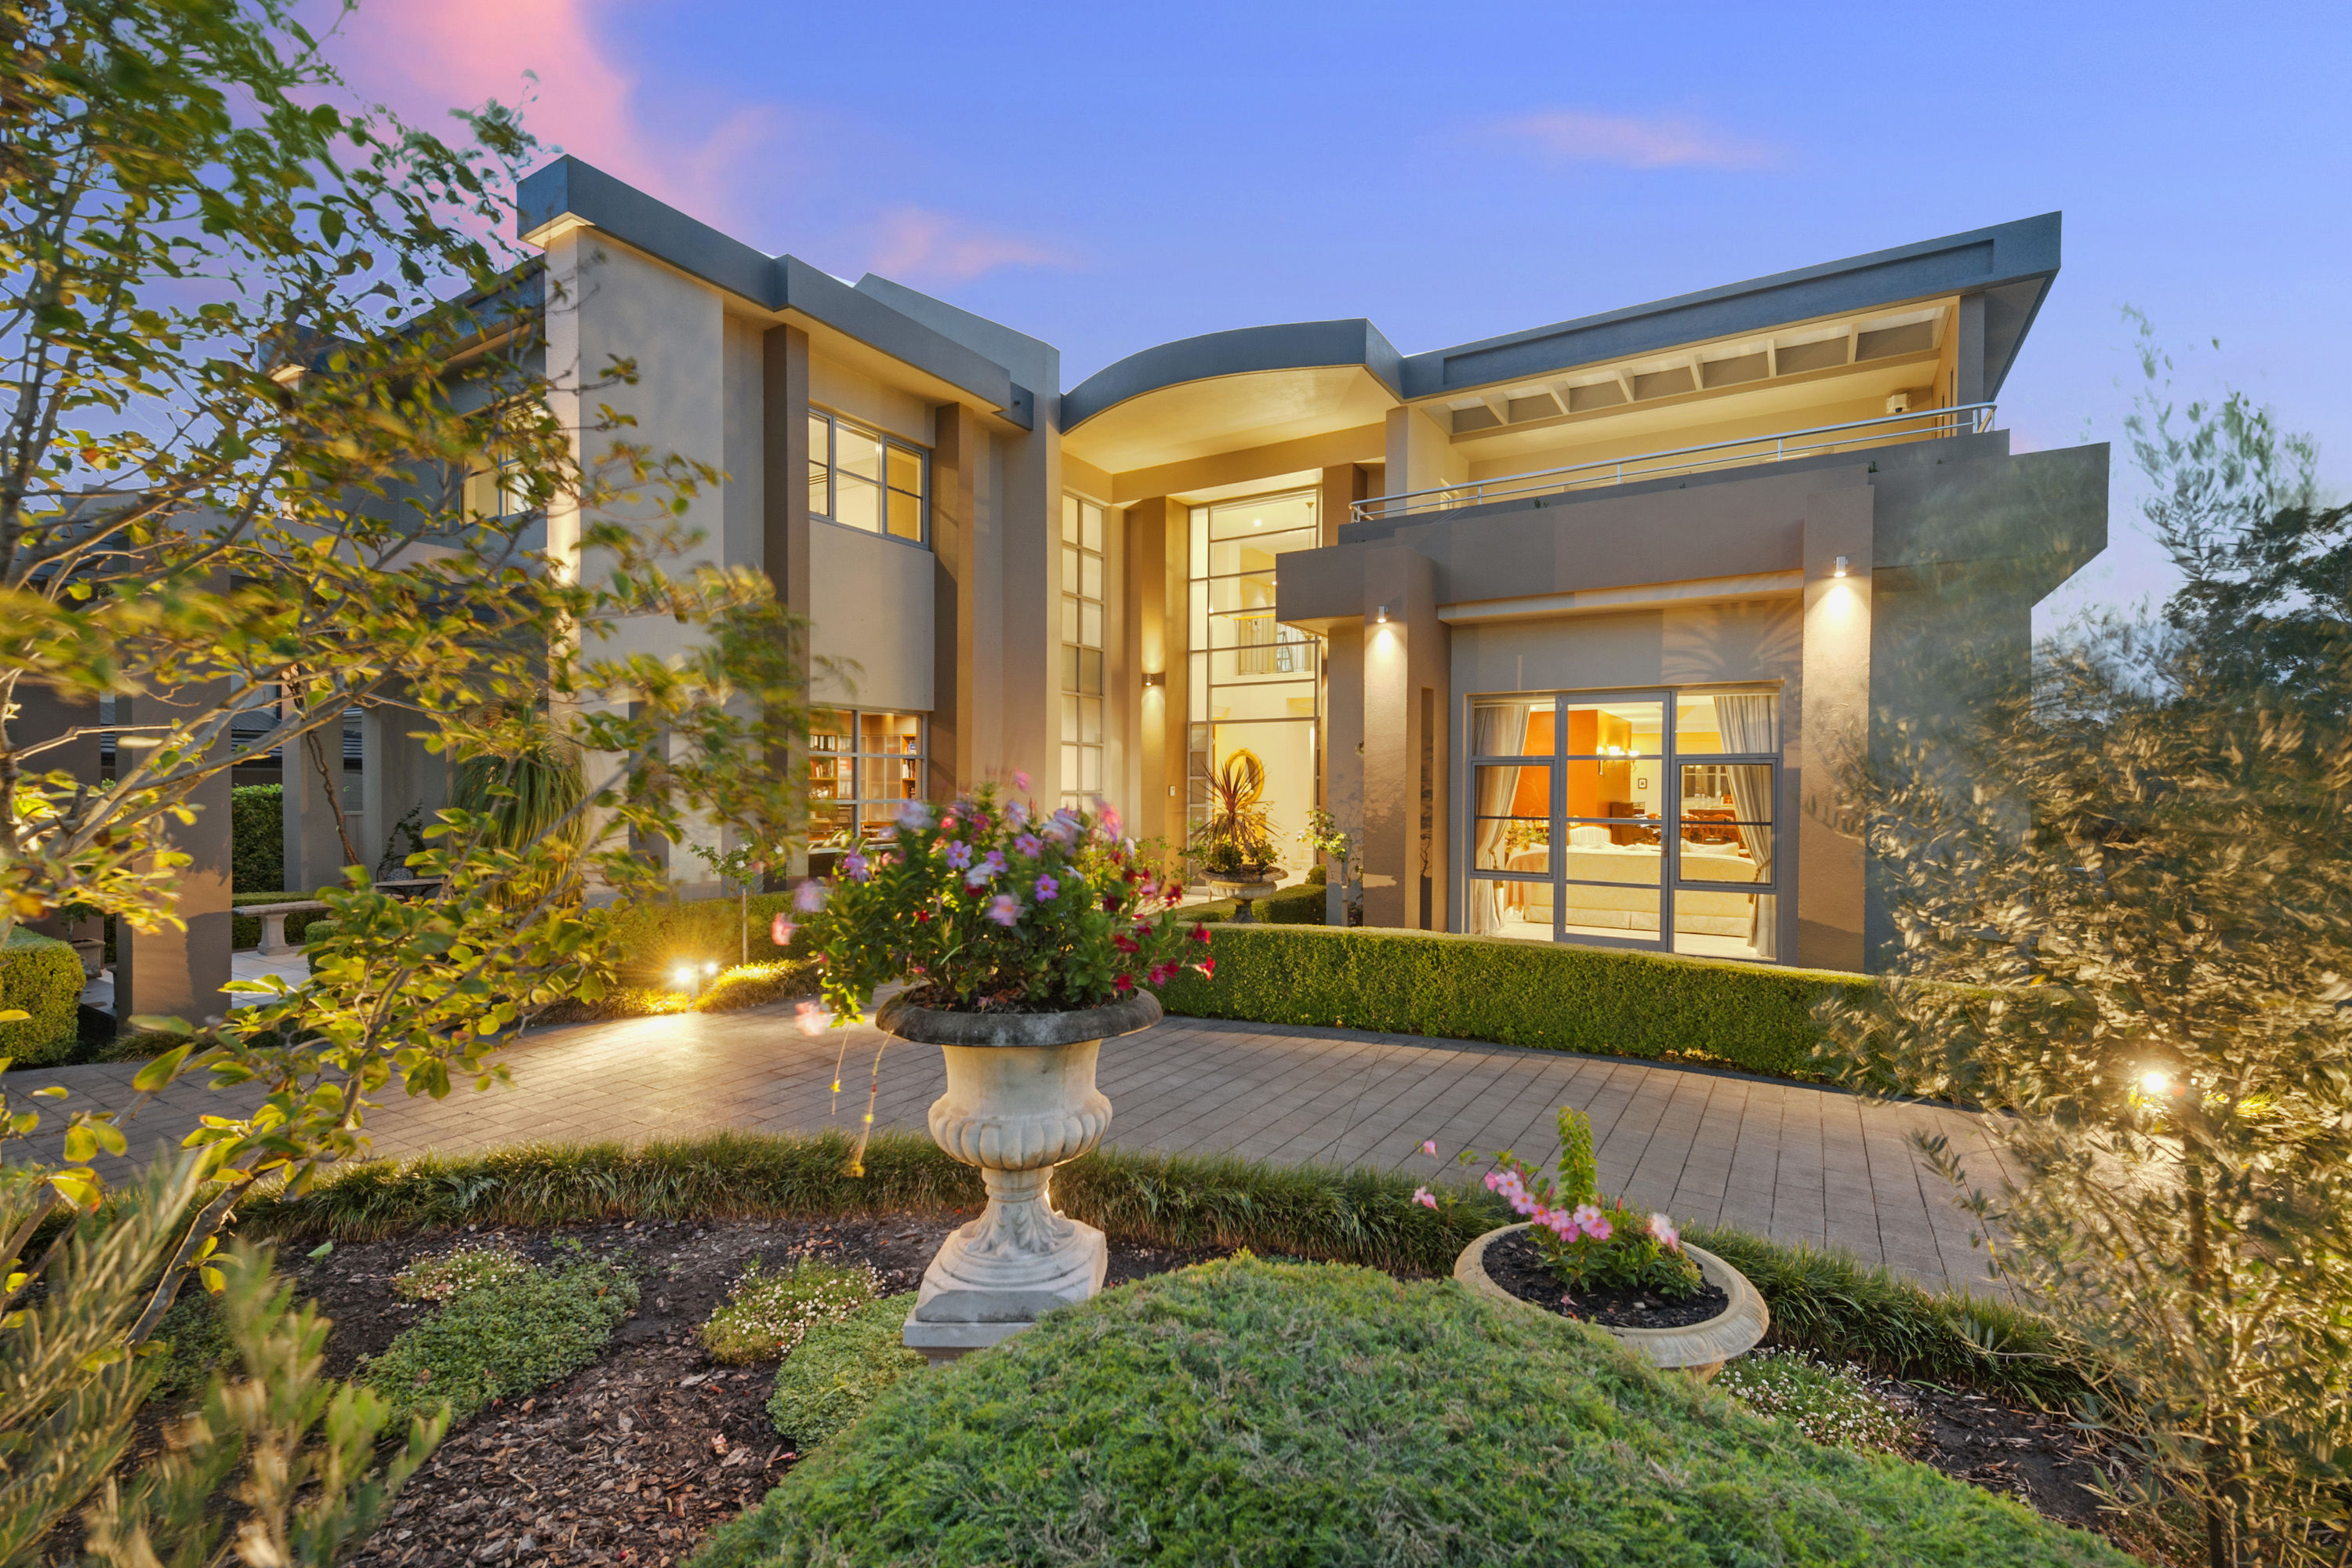 Other Residential for Sale at 4 Olympic Court, Carlingford Sydney, New South Wales, 2118 Australia